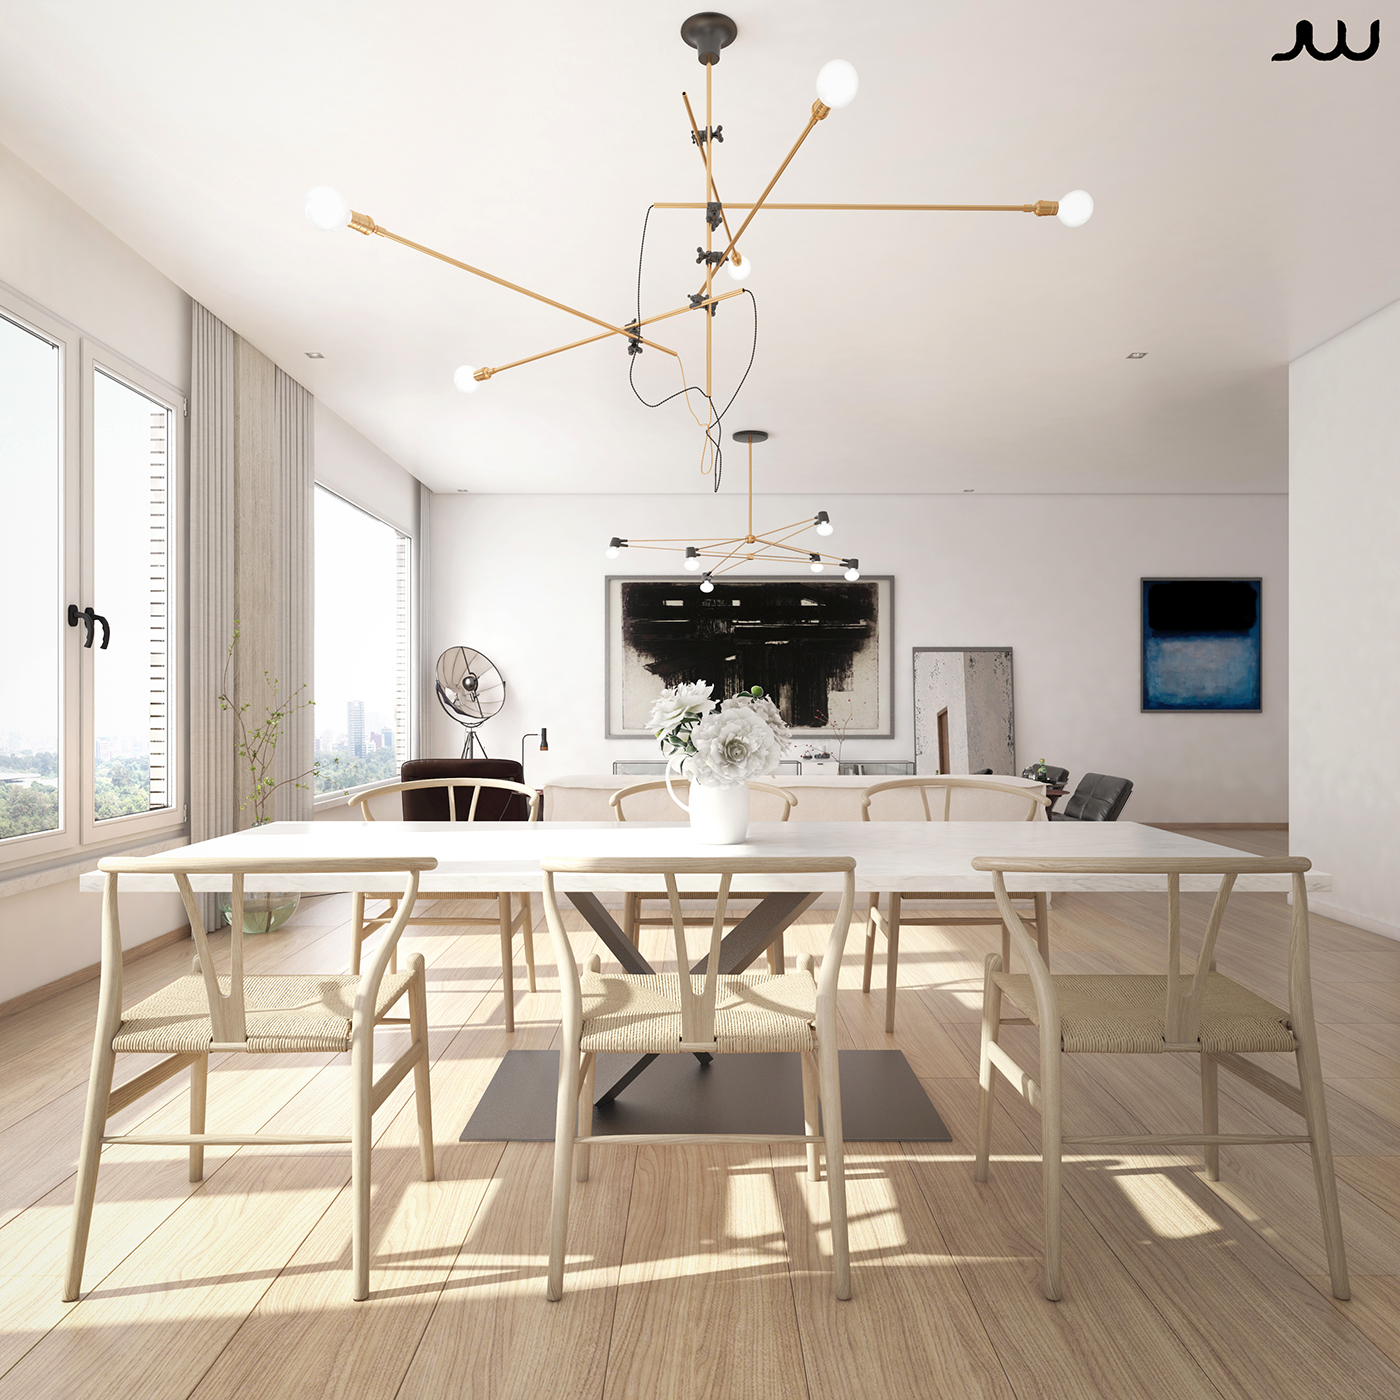 Central park view new york apartment cgi on behance for Maison moderne de luxe interieur